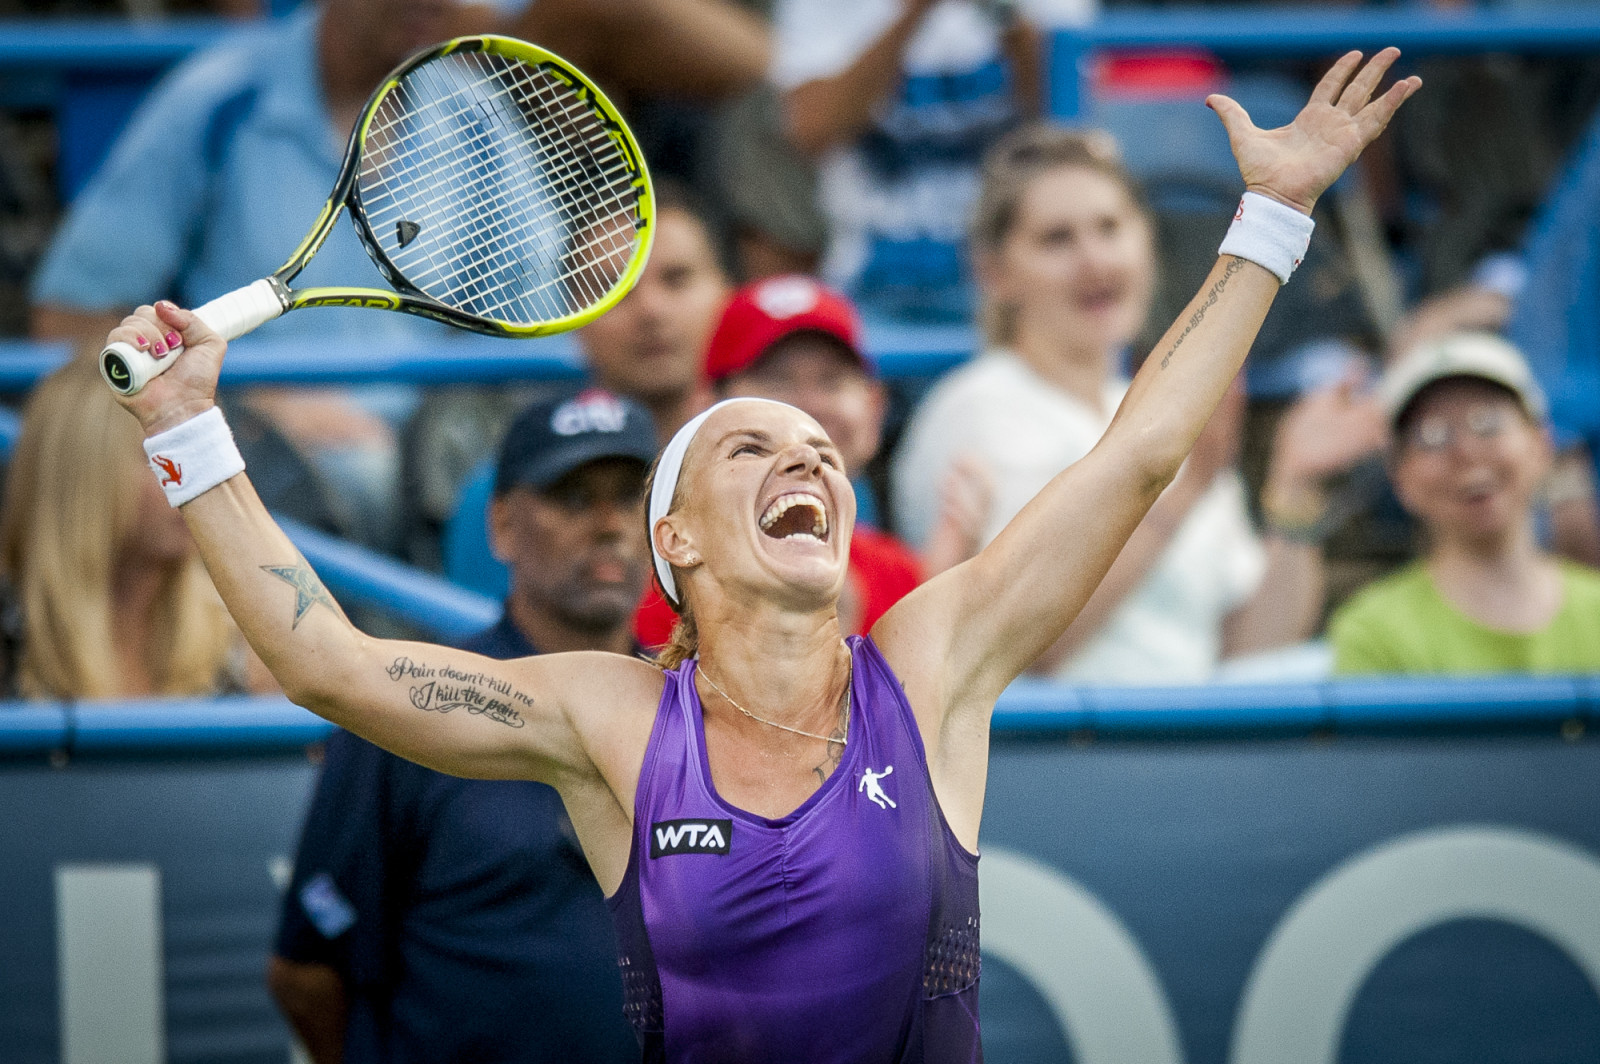 Svetlana Kuznetsova of Russia celebrates winning her finals singles match against Kurumi Nara of Japan at the Citi Open ATP tennis tournament in Washington, DC, USA, 3 Aug 2014. Kuznetsova won the women's final 6-3, 4-6, 6-4.